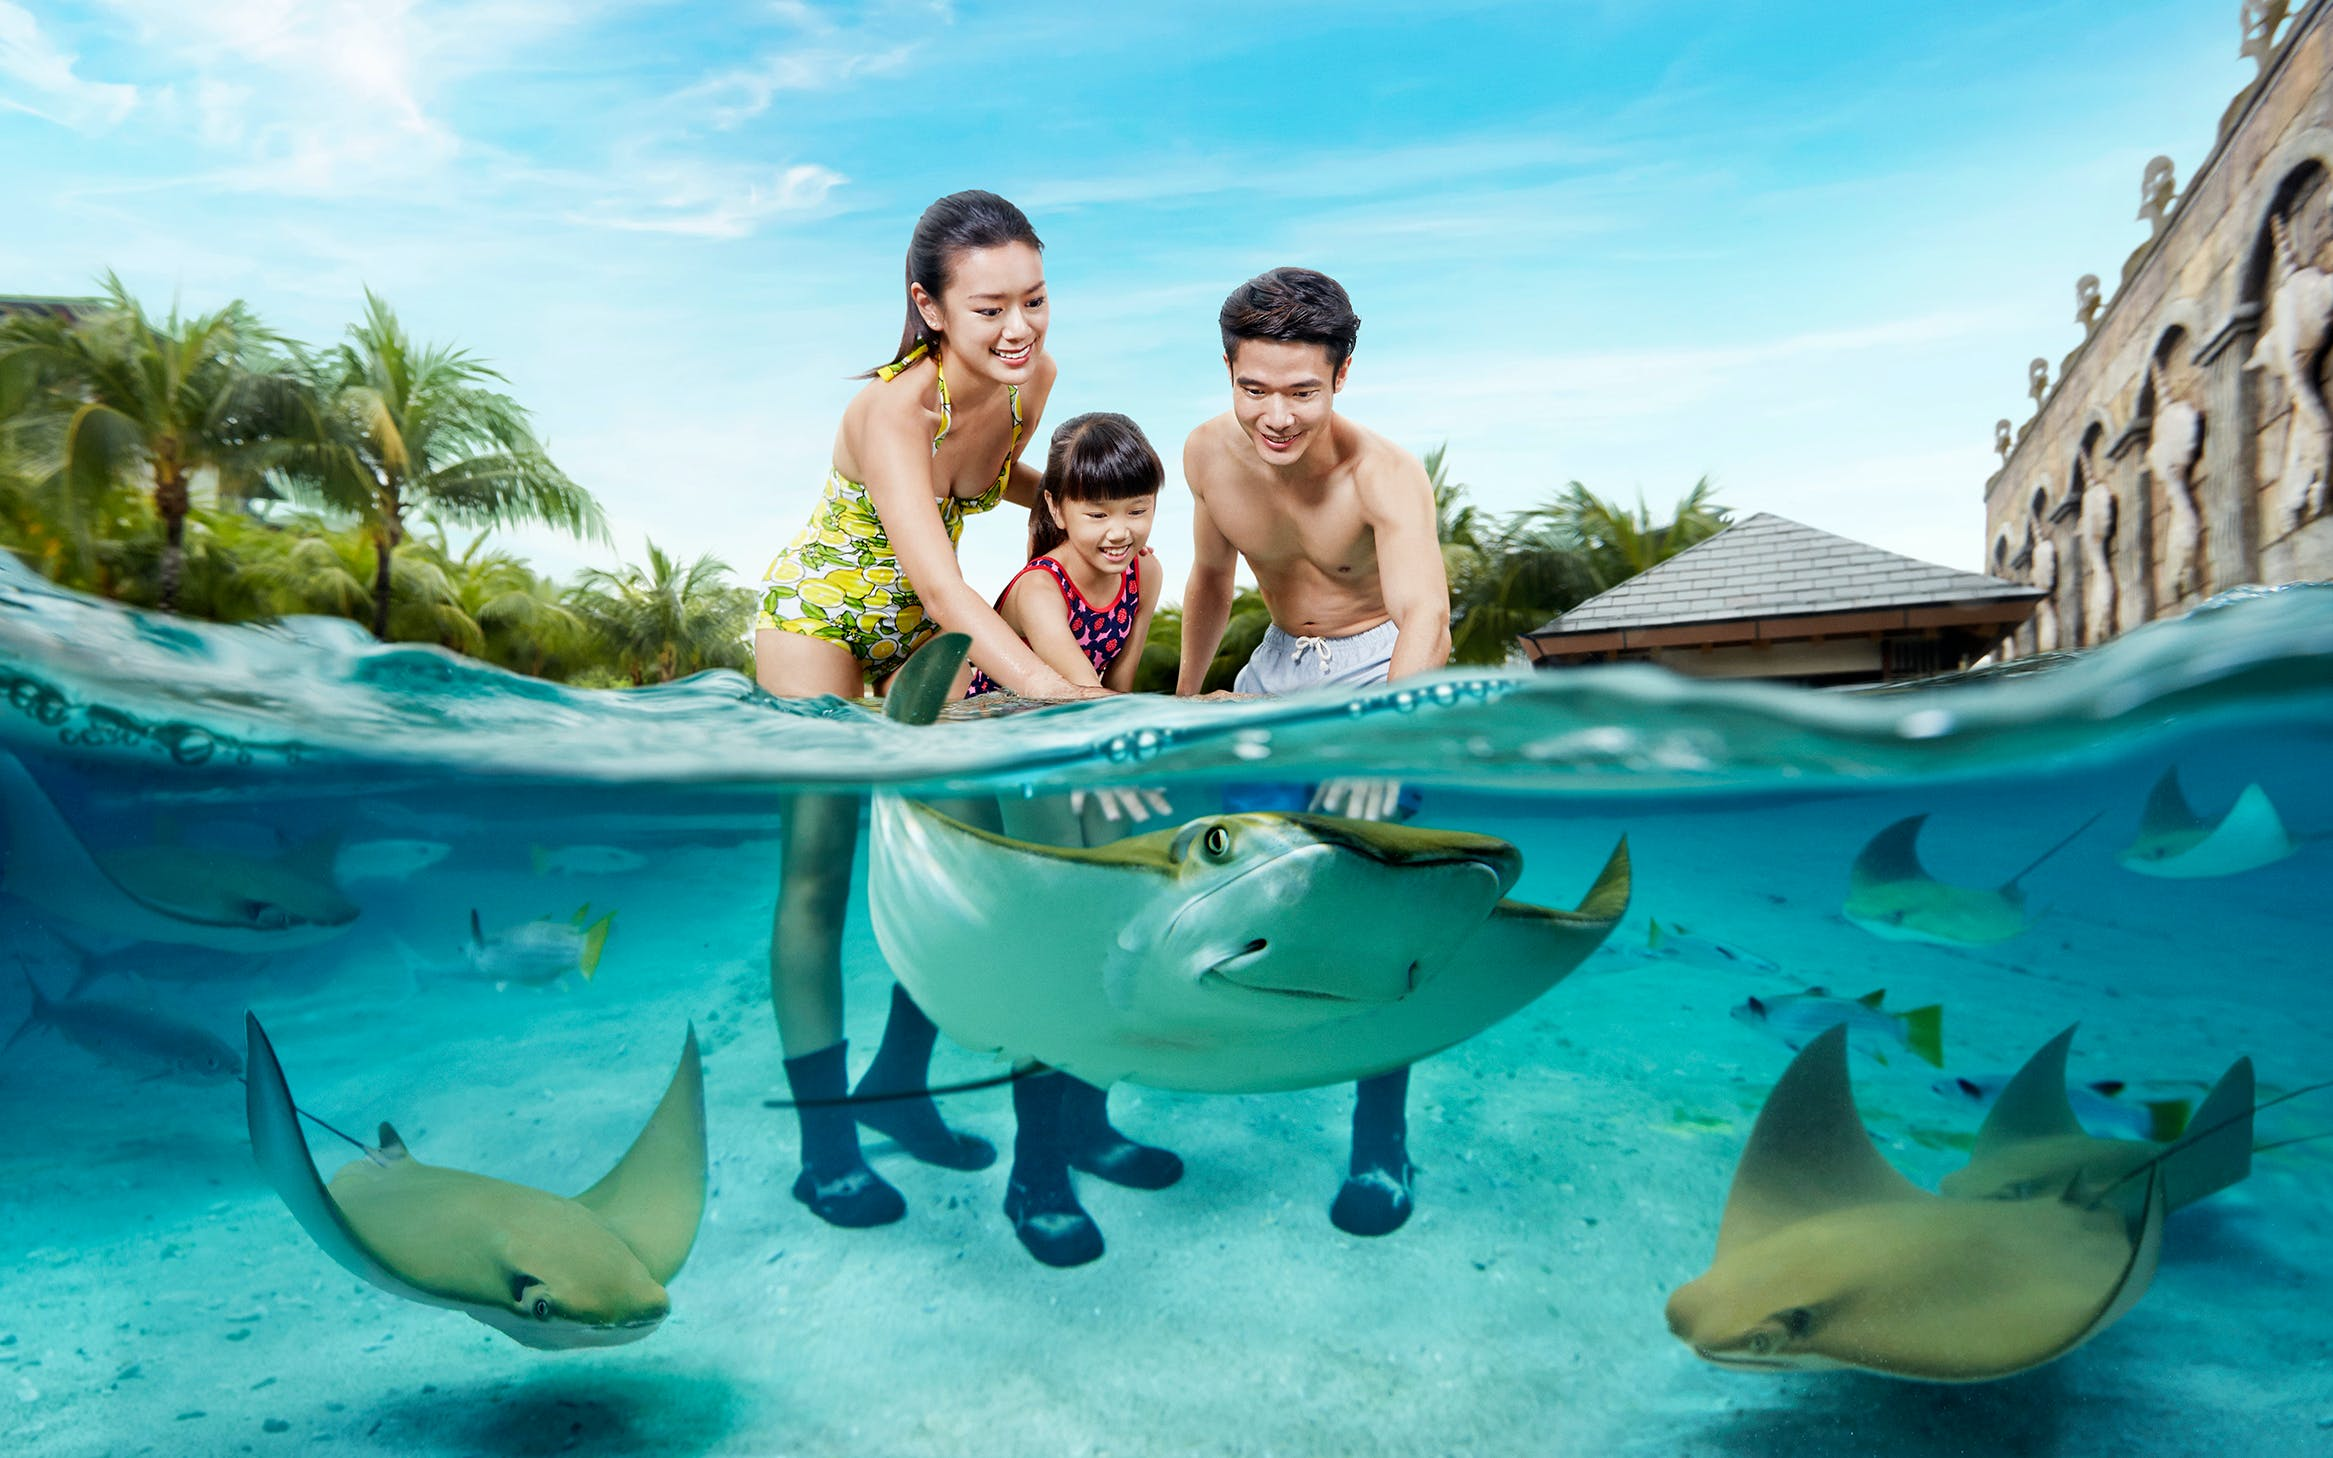 super saver combo: universal studios singapore + adventure cove waterpark-1